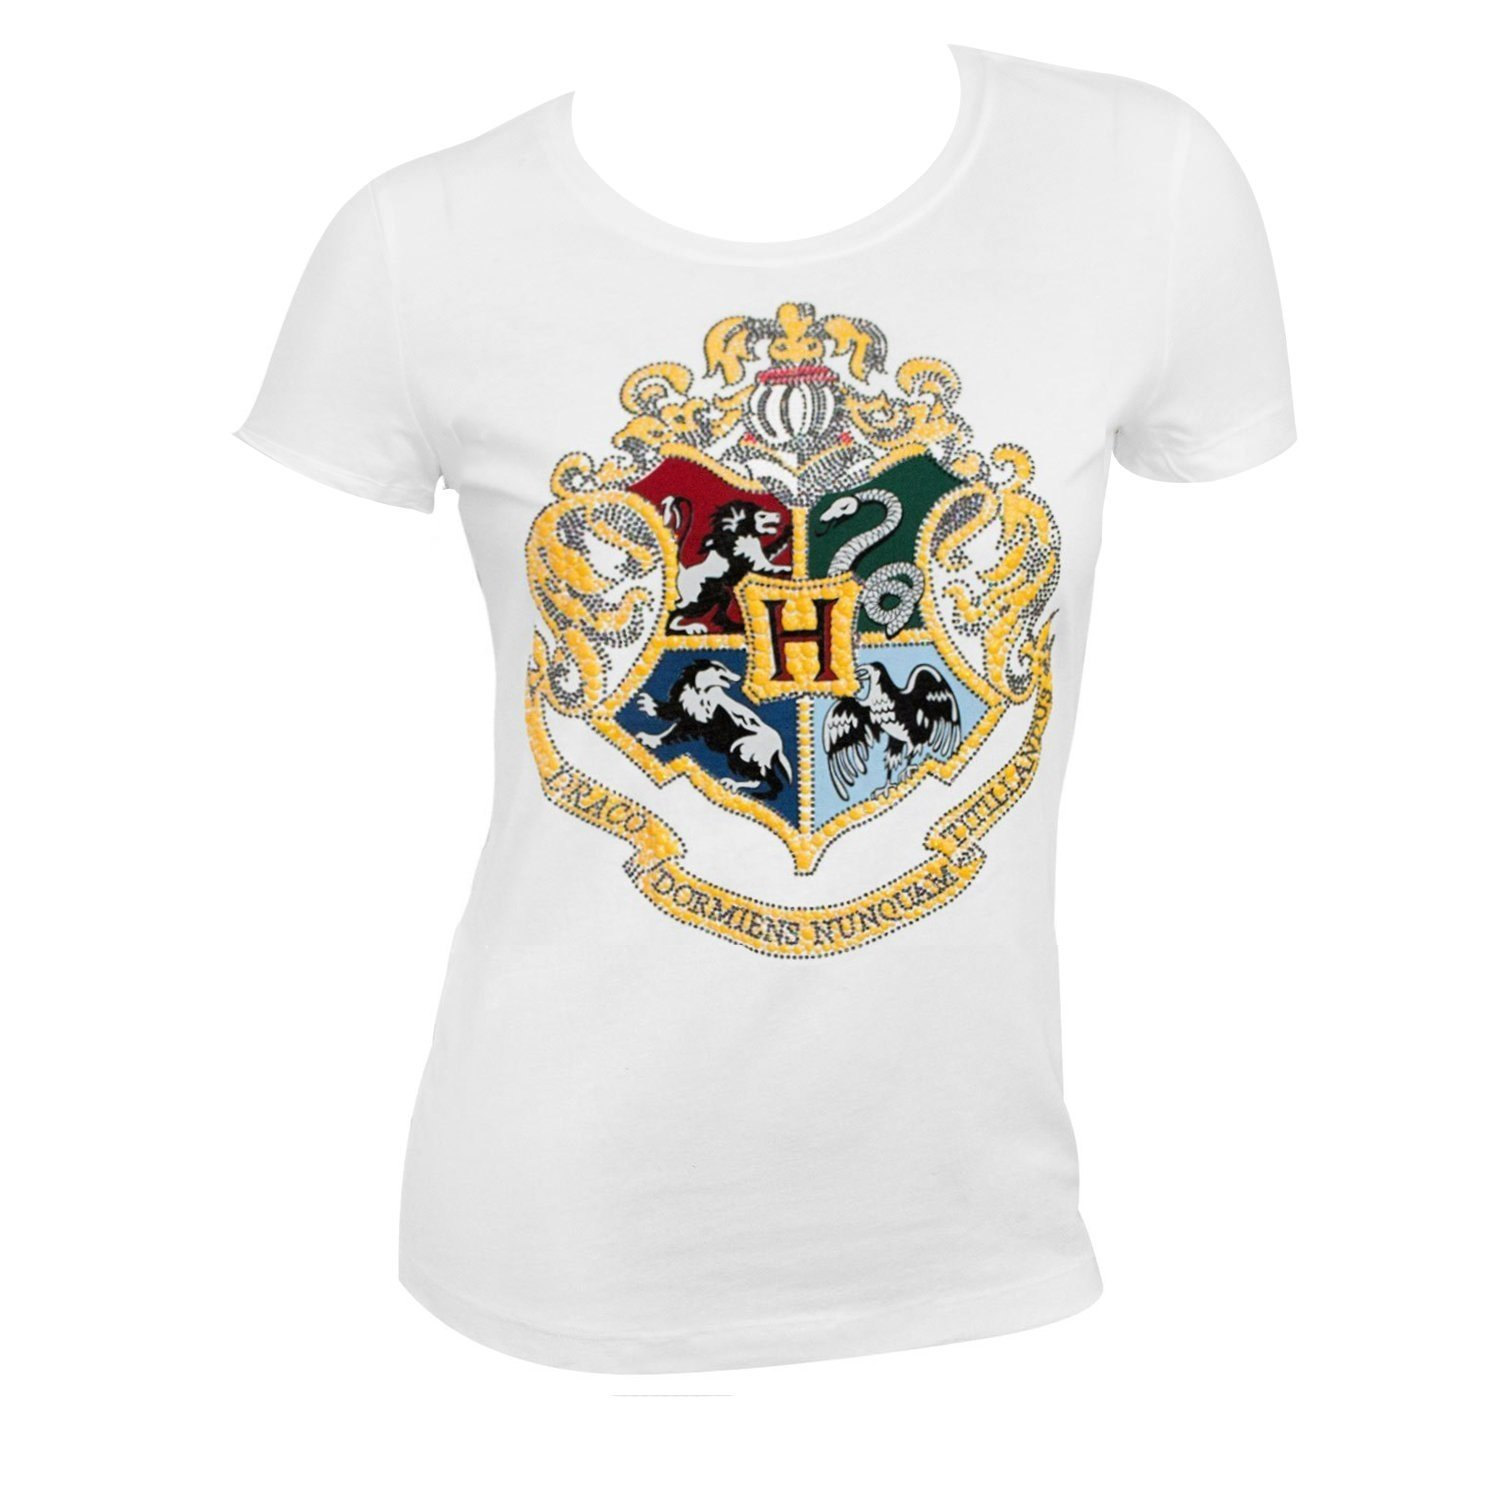 f90133ce Details about Harry Potter Hogwarts Raised & Glittered Crest Girls Youth T- Shirt, White